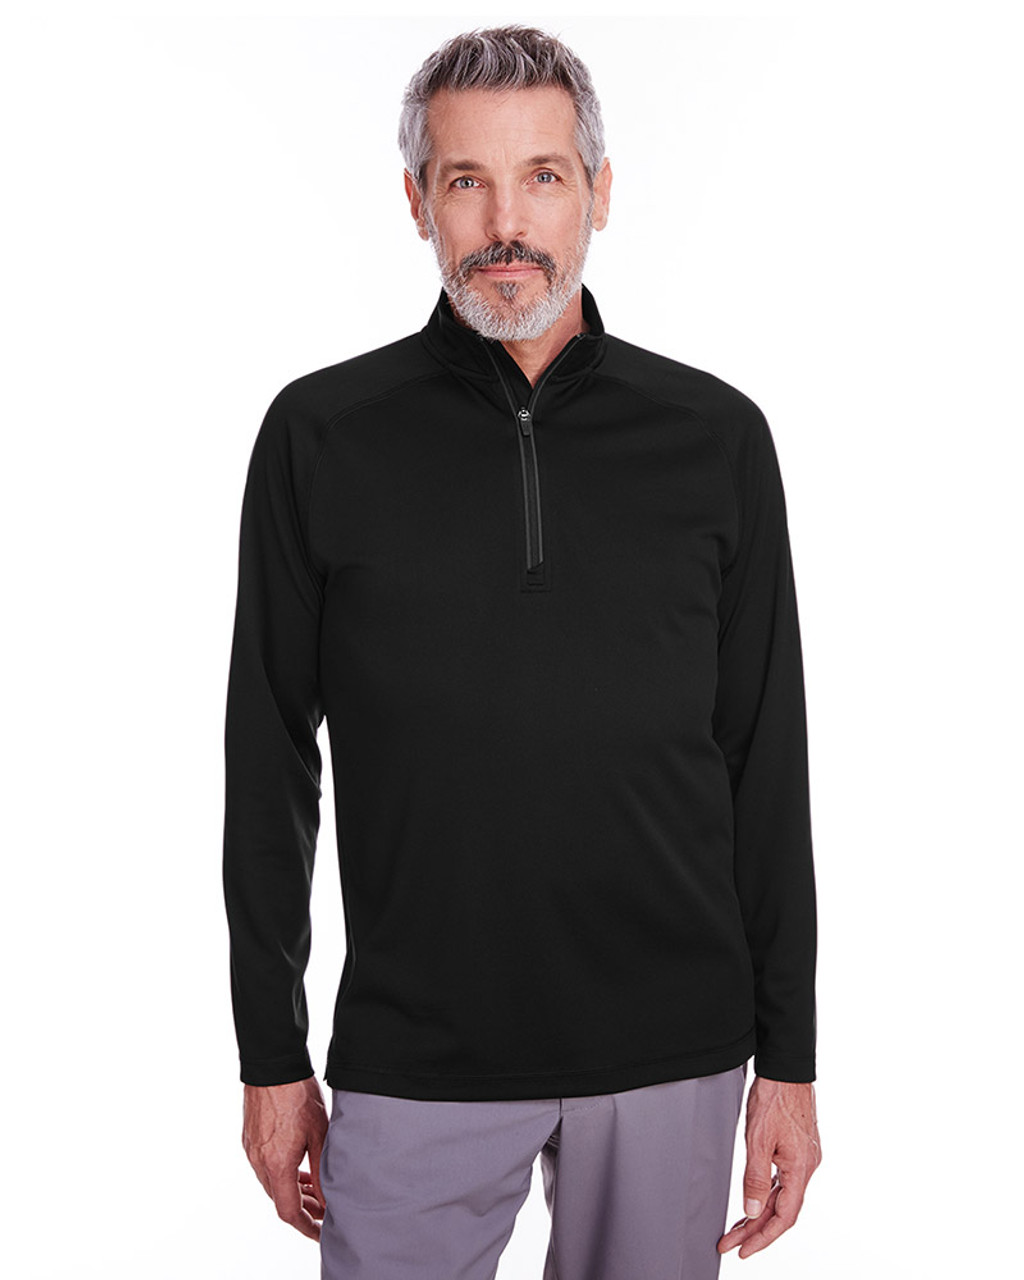 Black - S16797 Spyder Men's Freestyle Half-Zip Pullover Sweatshirt | Blankclothing.ca